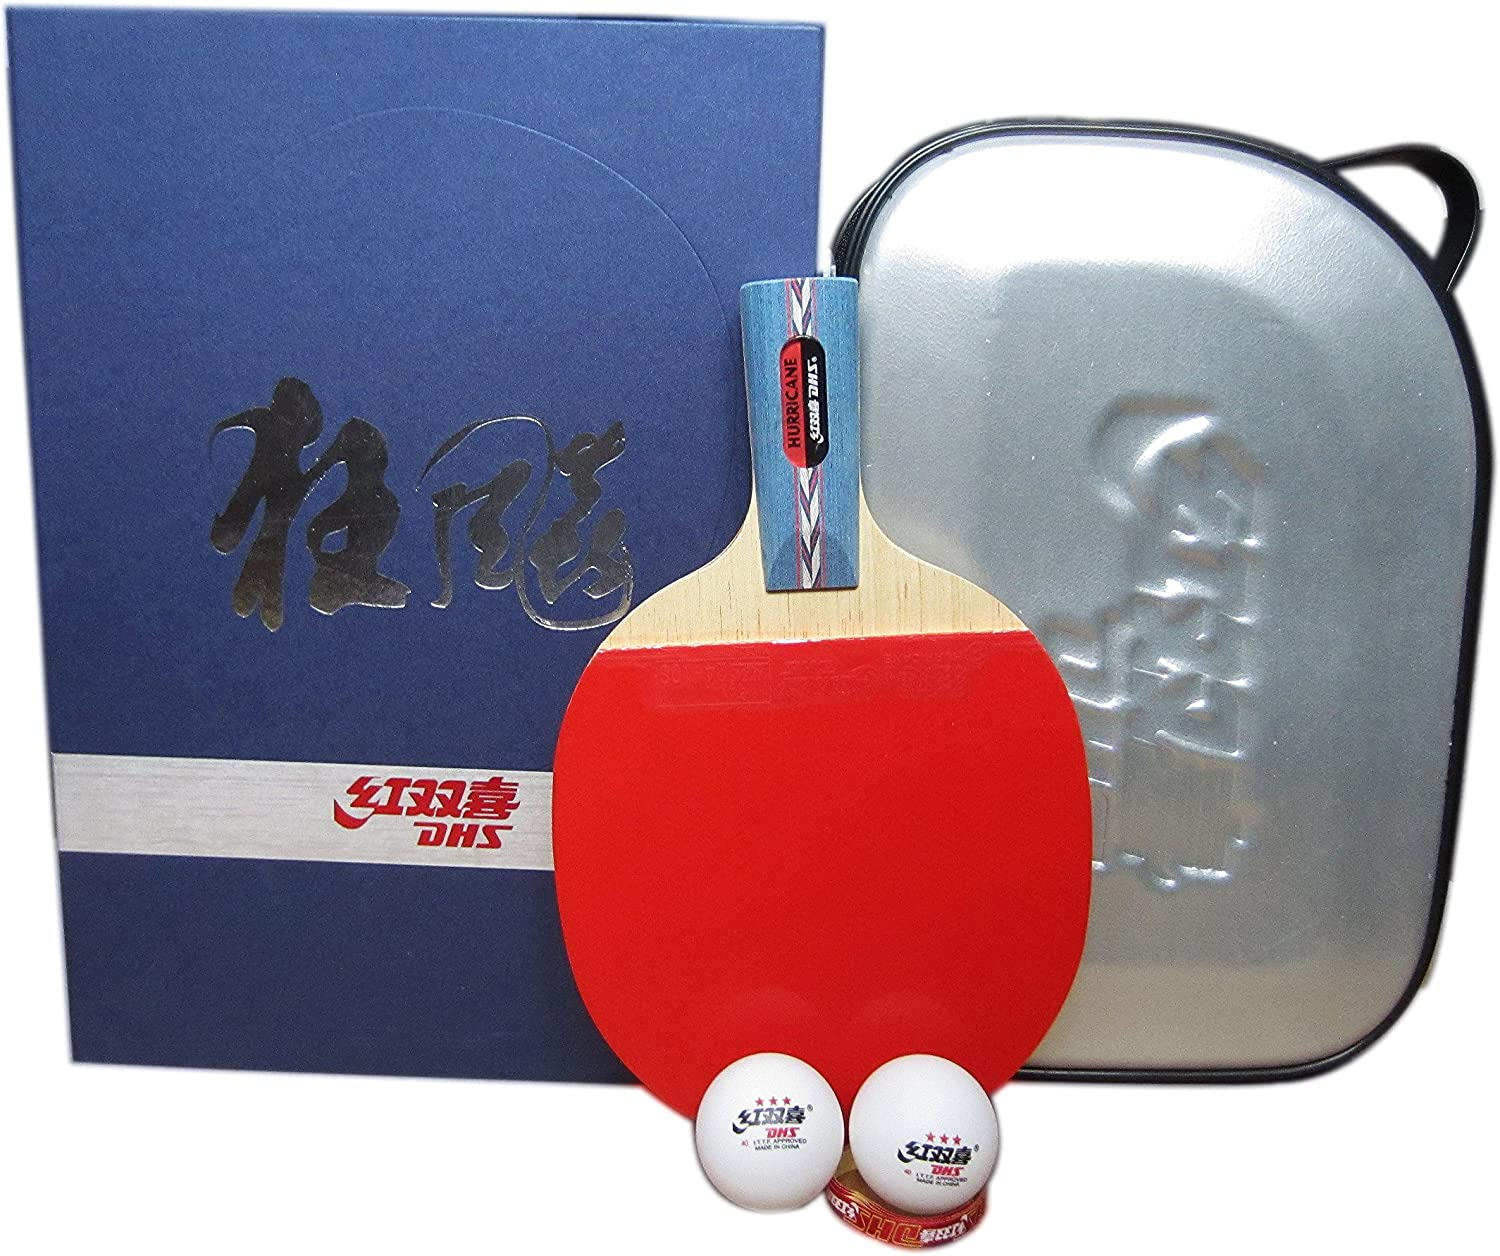 DHS HURRICANE-II Tournament Table Tennis Racket (Shakehand), Pingpong Racquets by DHS